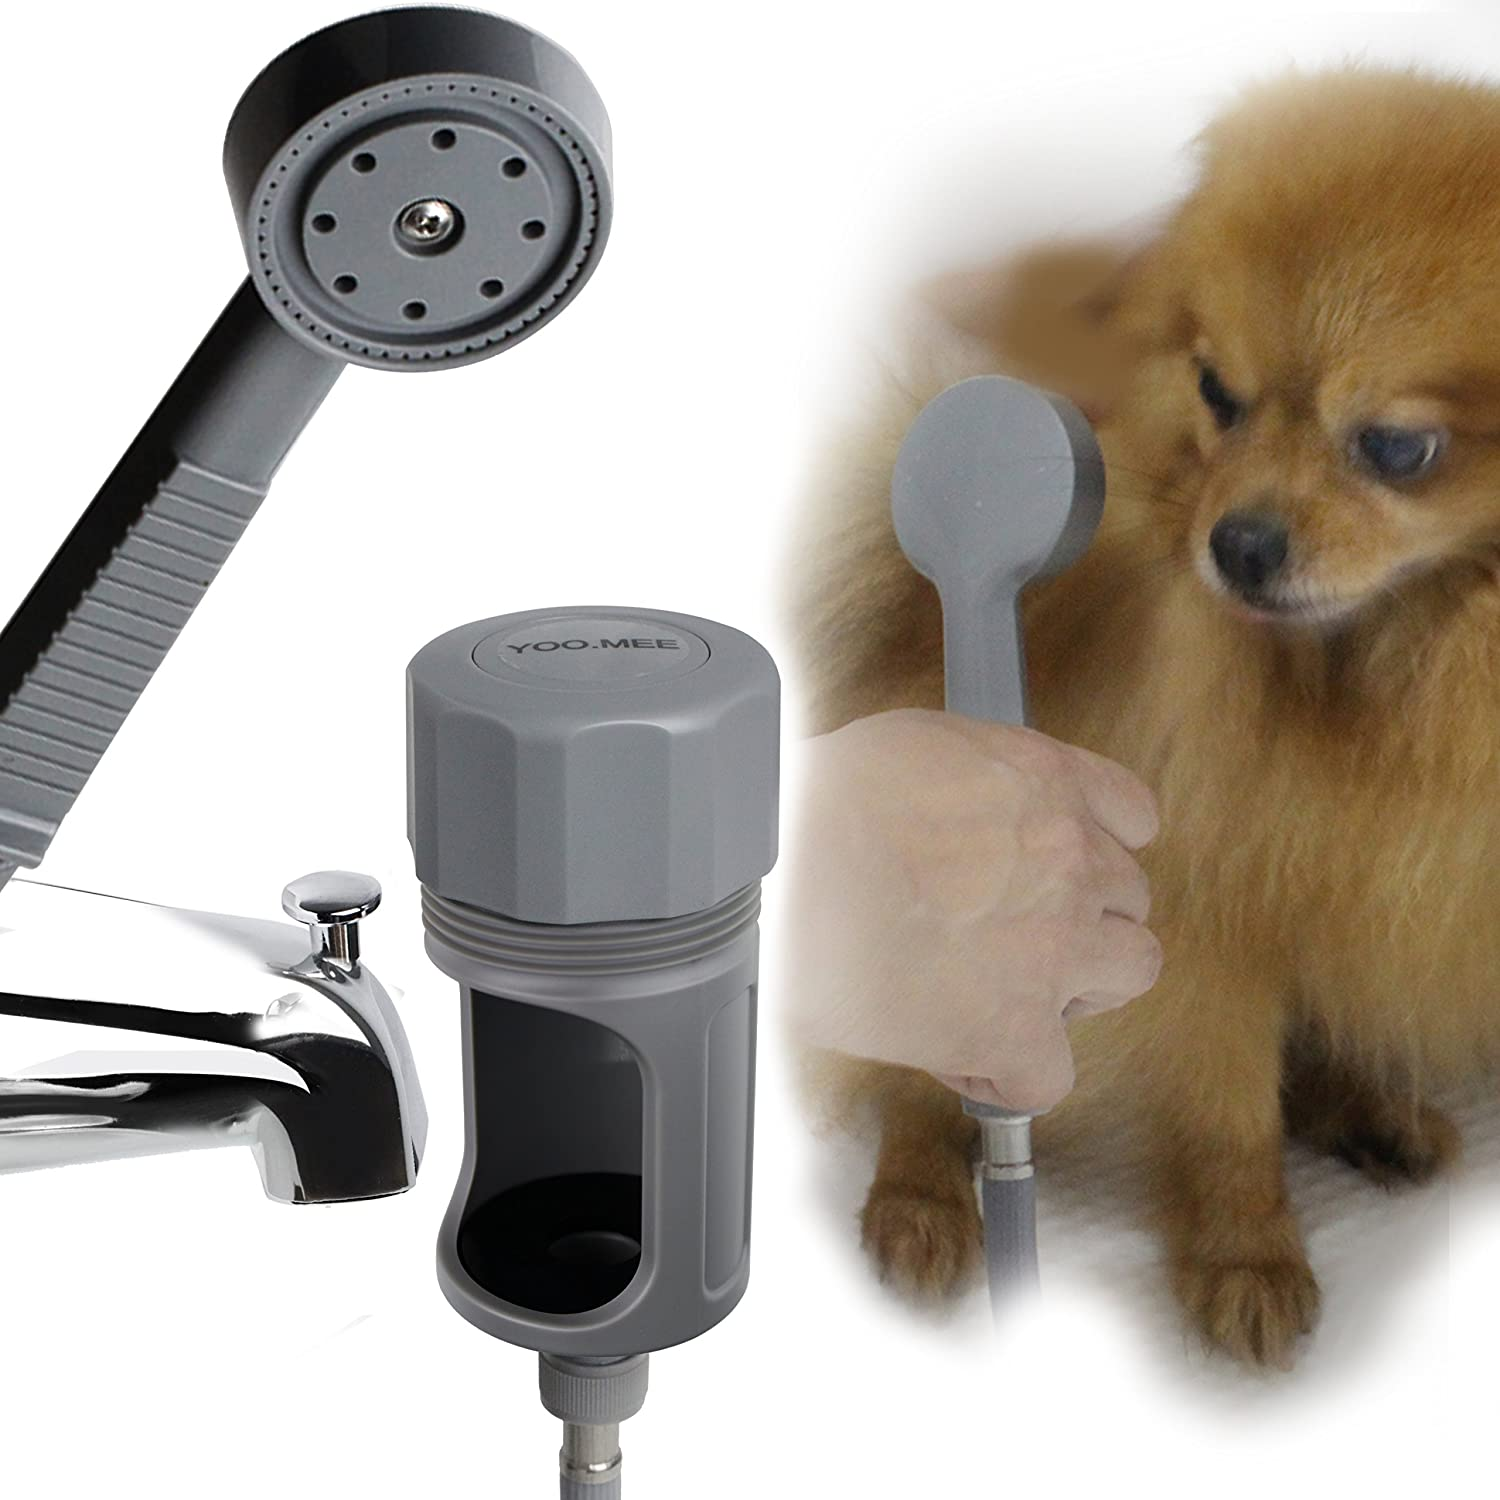 pets shower attachment quick connect on tub spout w front diverter ideal for bathing child washing pets and cleaning tub